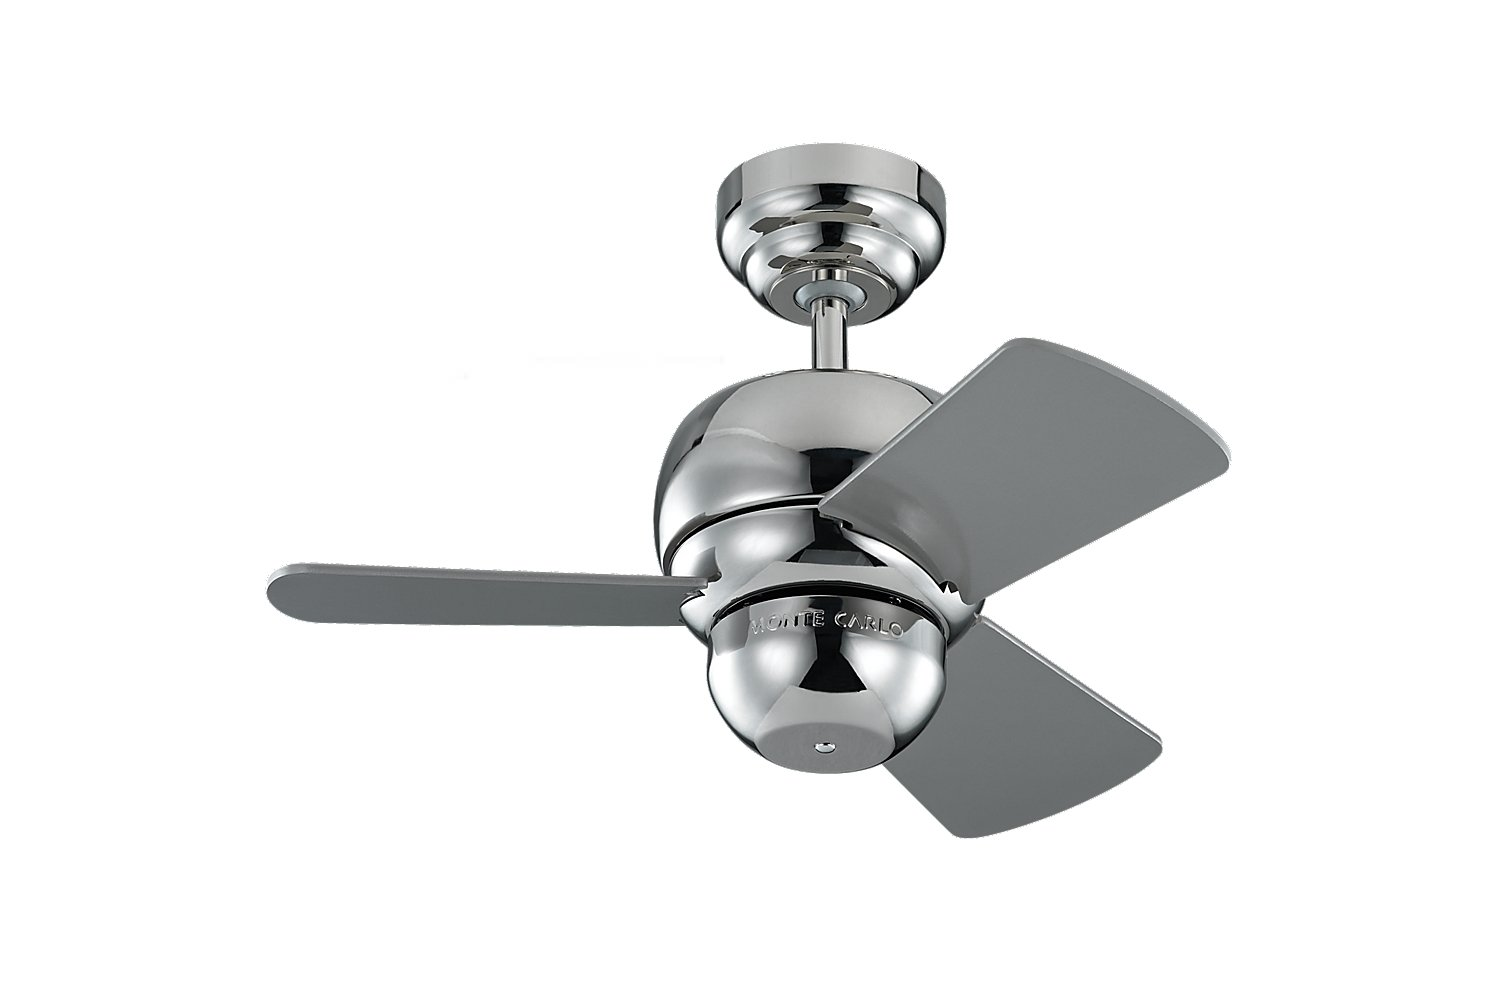 bn with inch bright nk tor nickel nl undefined company torsion fan speed ceilings control modern and ceiling blades